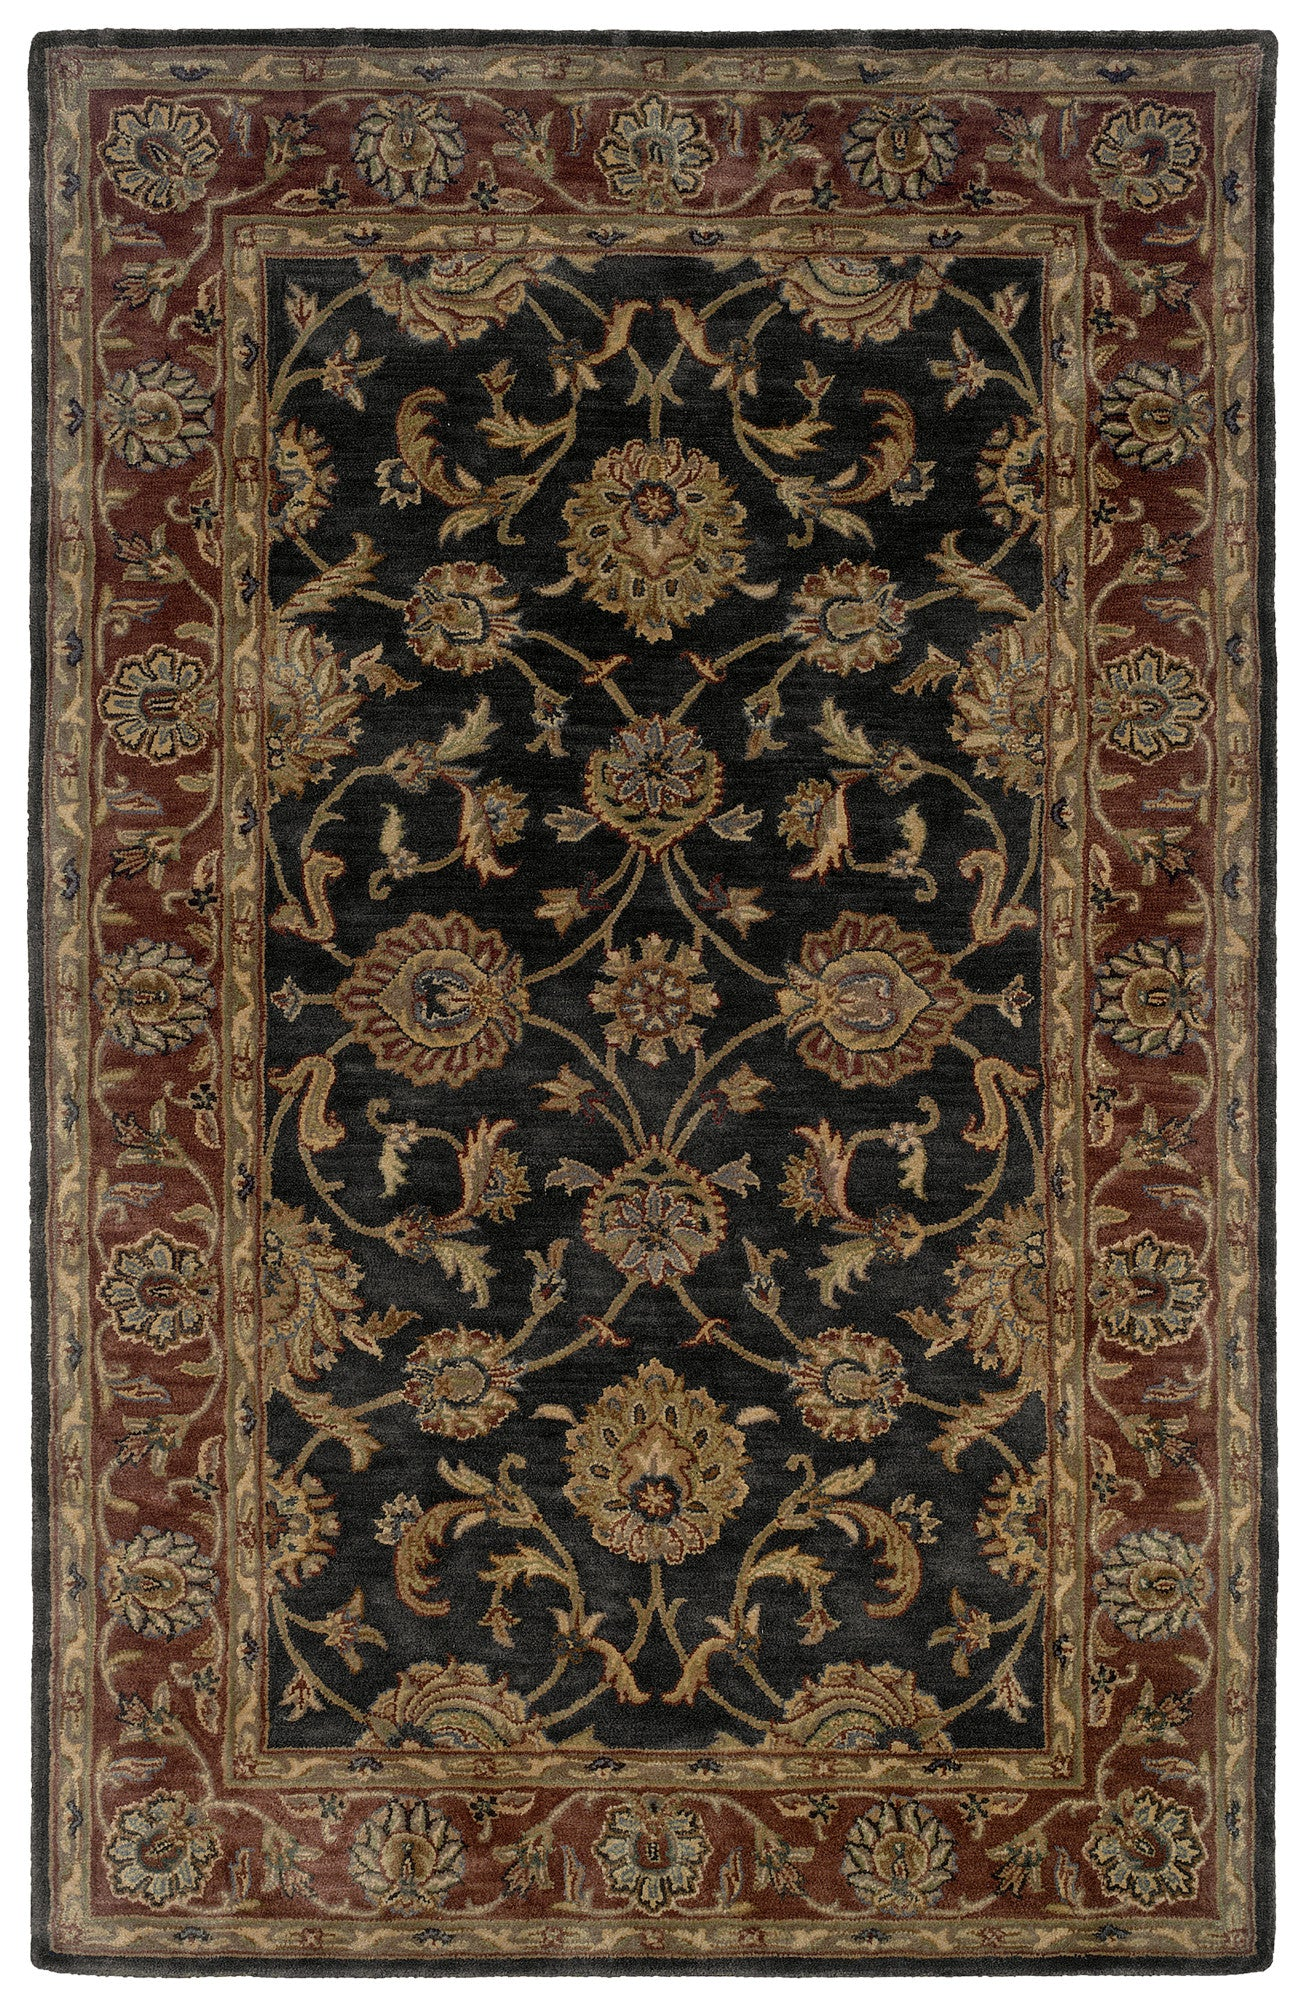 LR Resources Heritage 10105 Charcoal/ Rust Area Rug